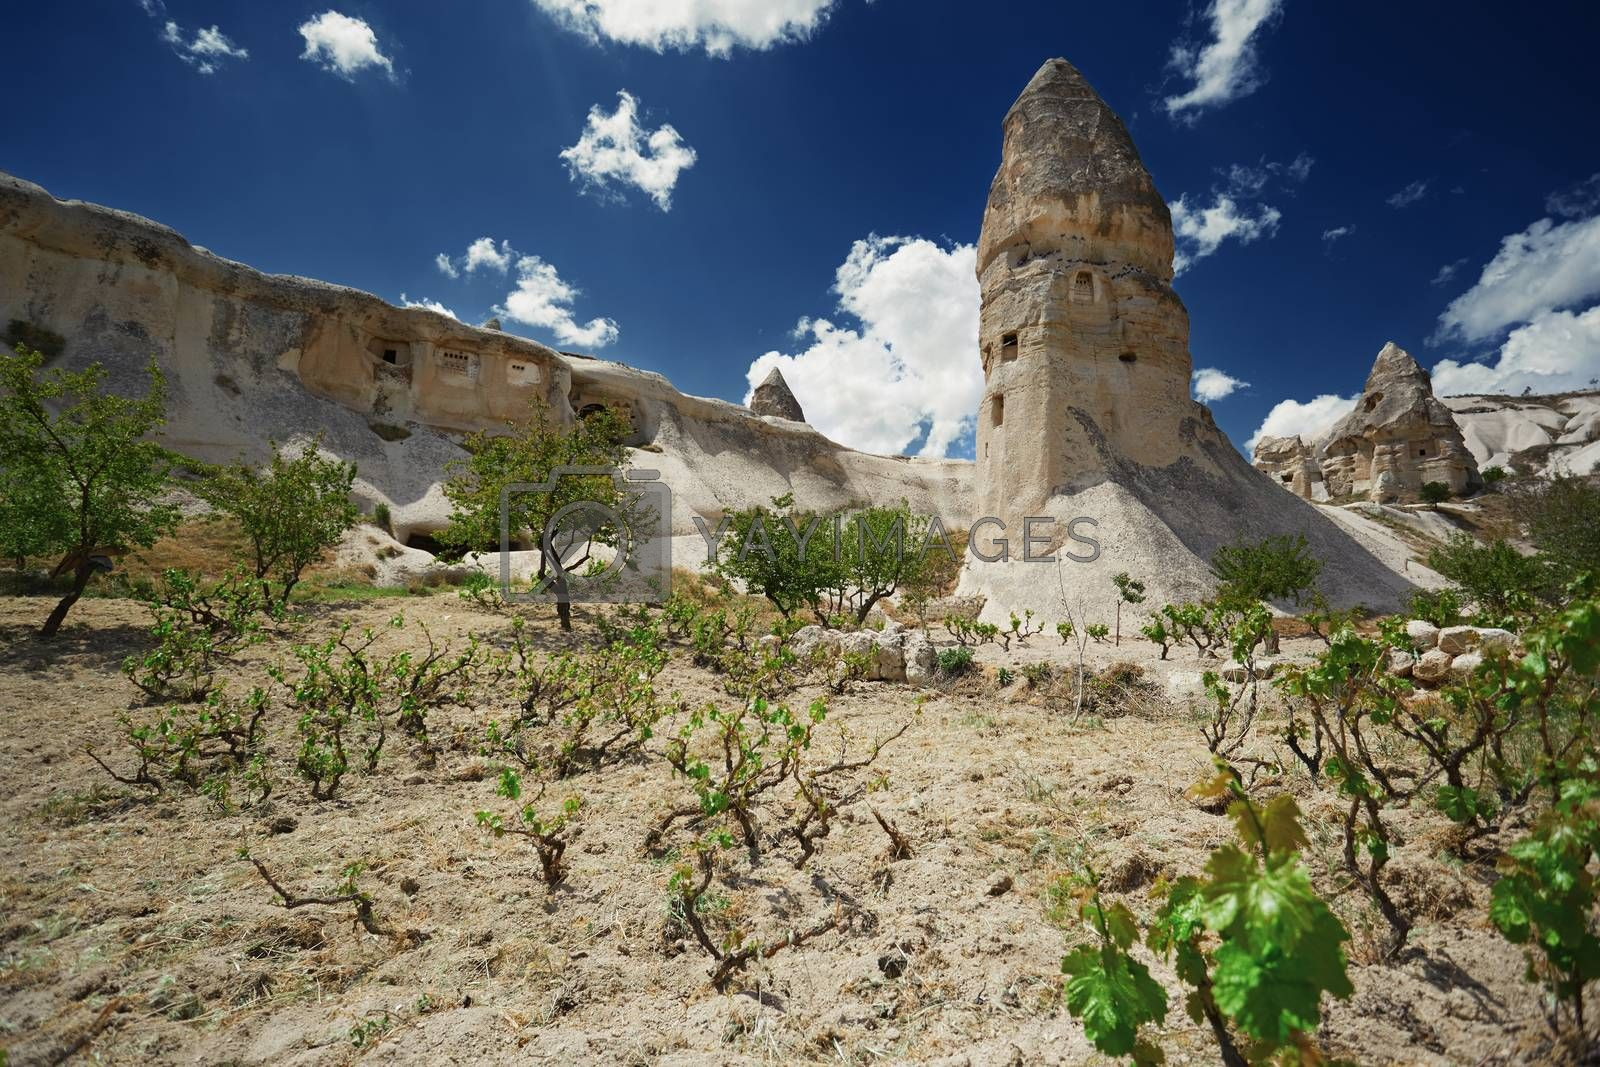 Wineyard at the geological rock formation in Cappadocia, Turkey